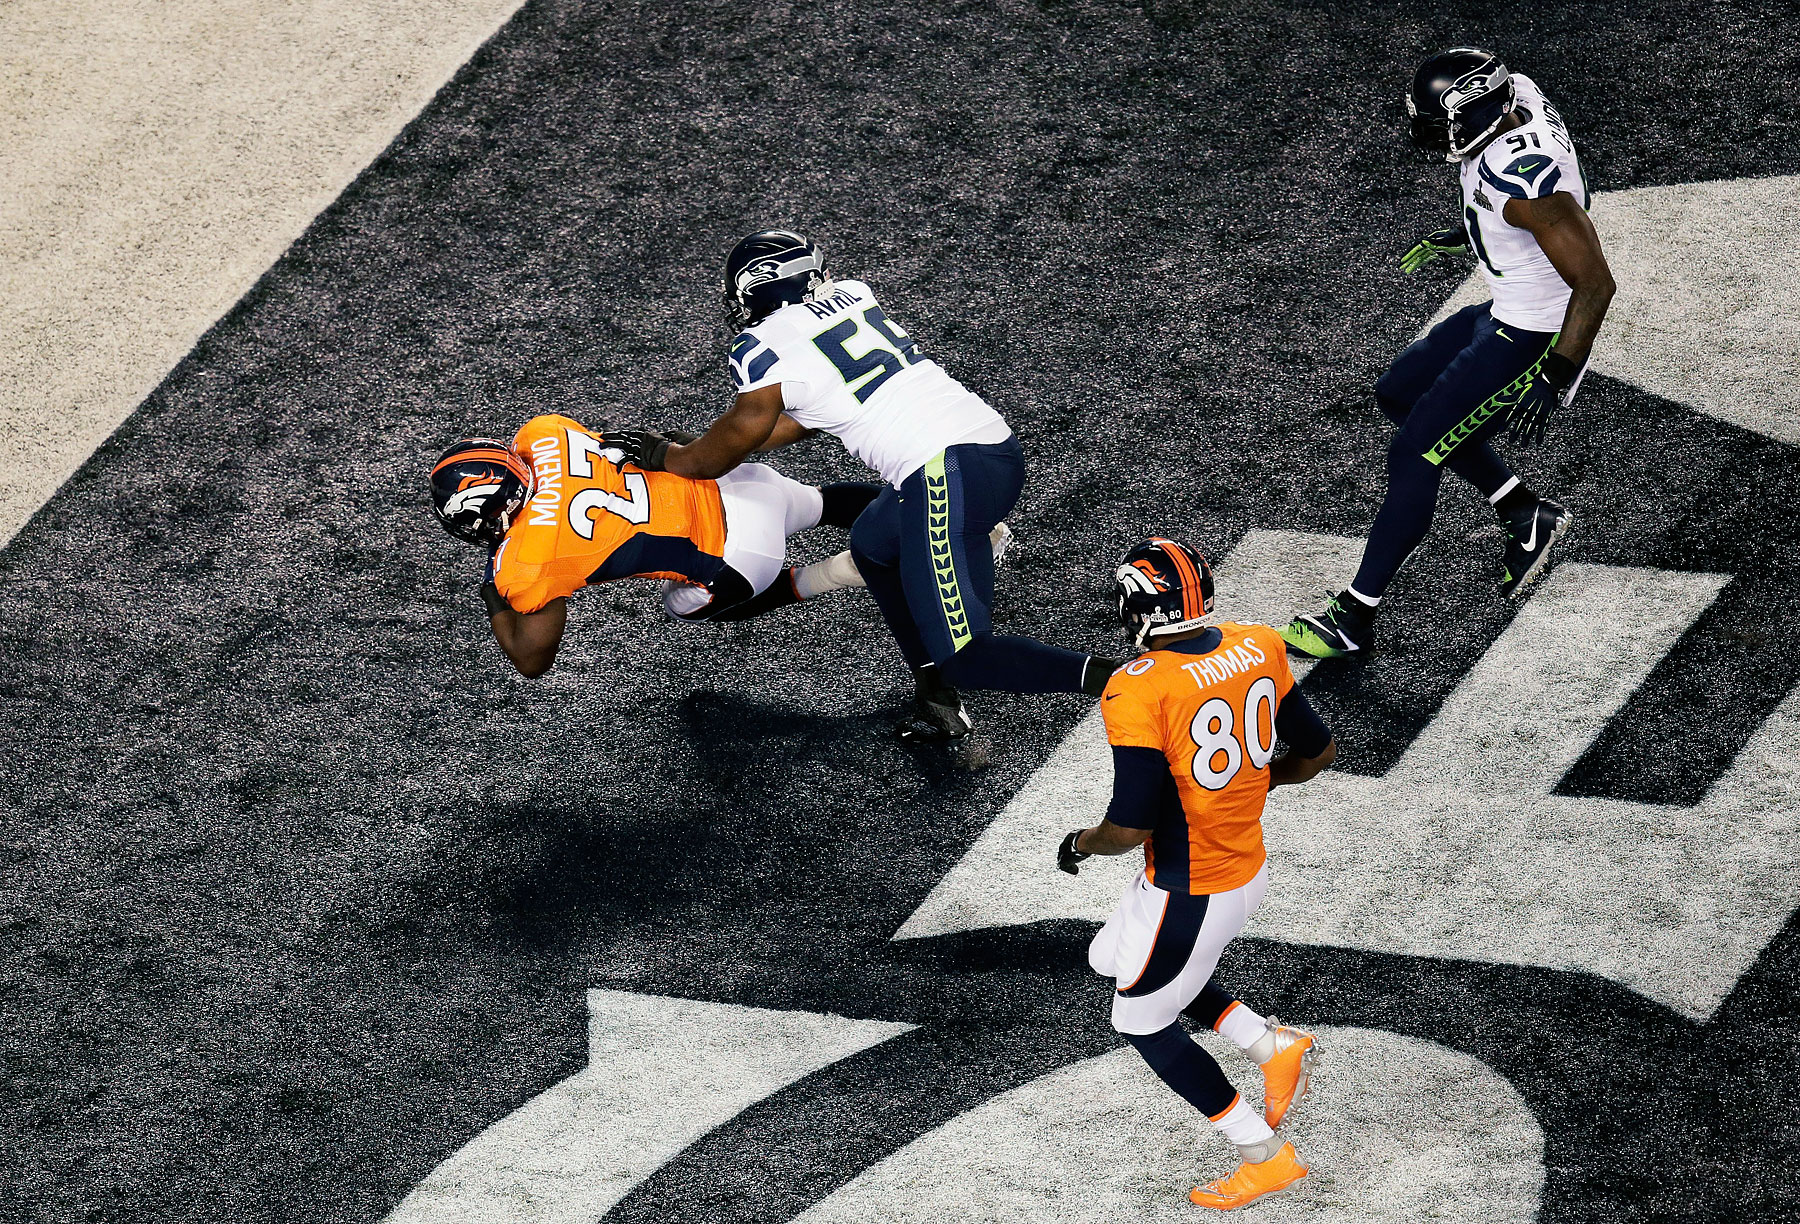 Running back Knowshon Moreno of the Denver Broncos recovers the ball in the endzone for a safety against the Seattle Seahawks during the first quarter.